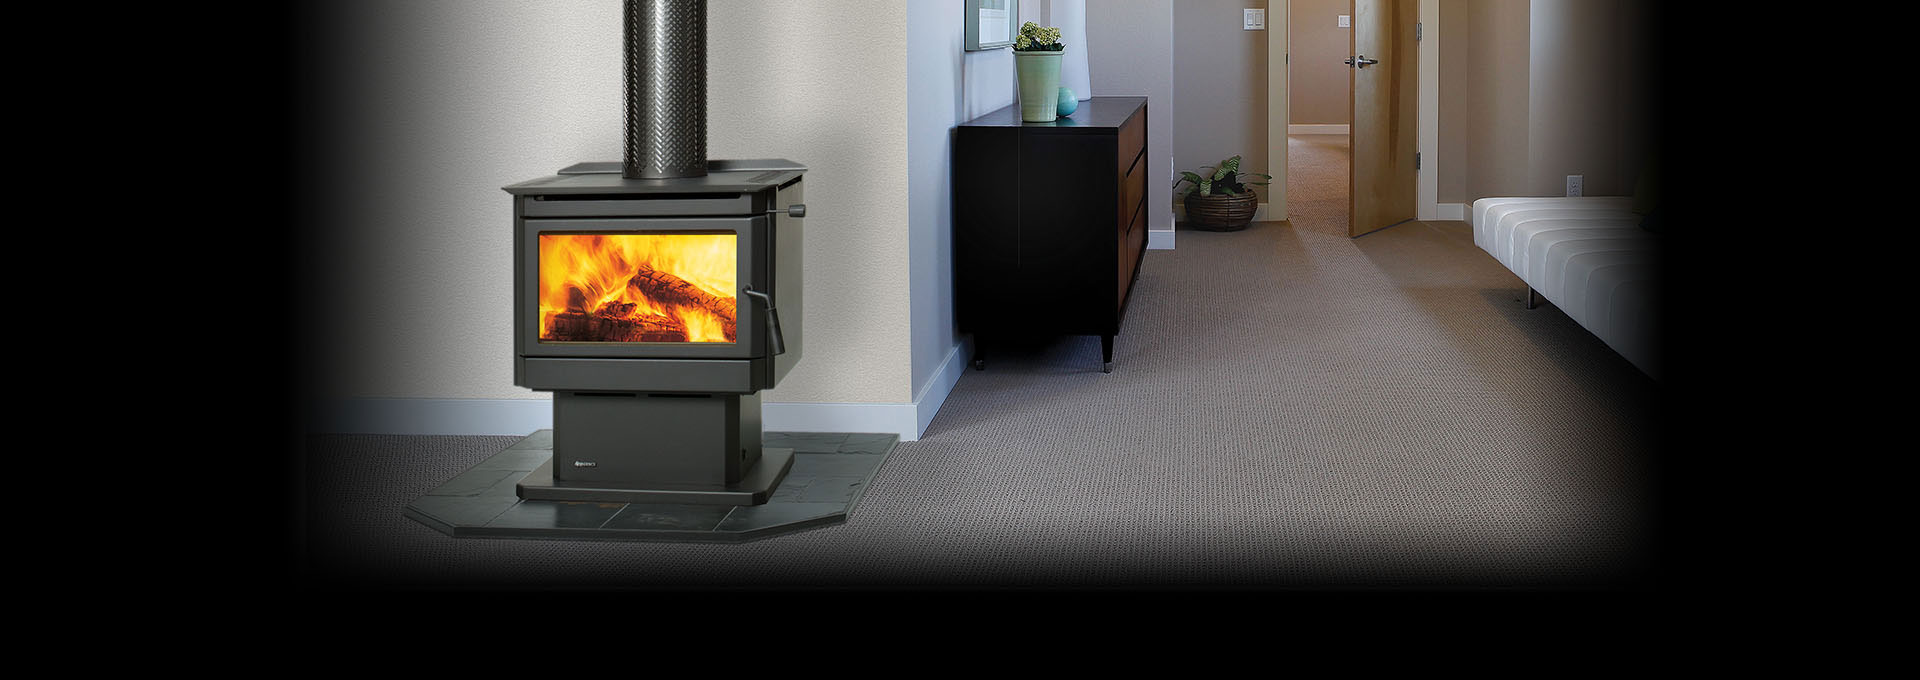 hearth stove freestanding fireplace archive the category stoves wood for shop